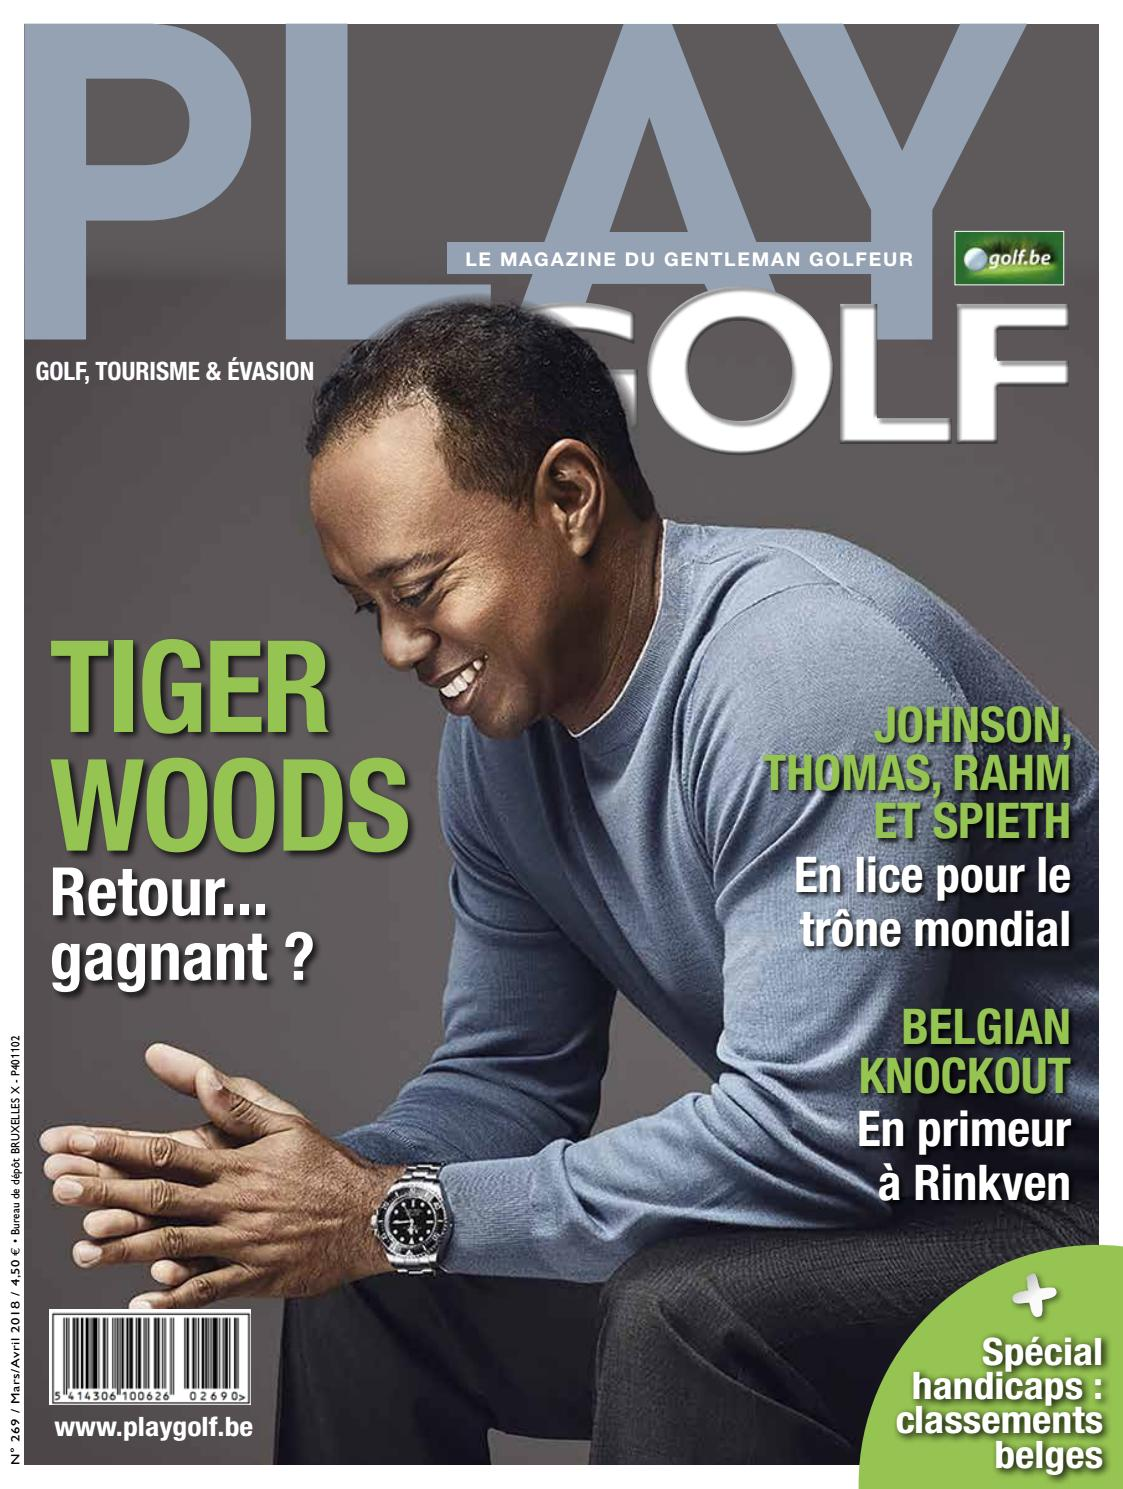 Play Golf Printemps 2018 by Ventures - issuu 2a29fafe5a5e